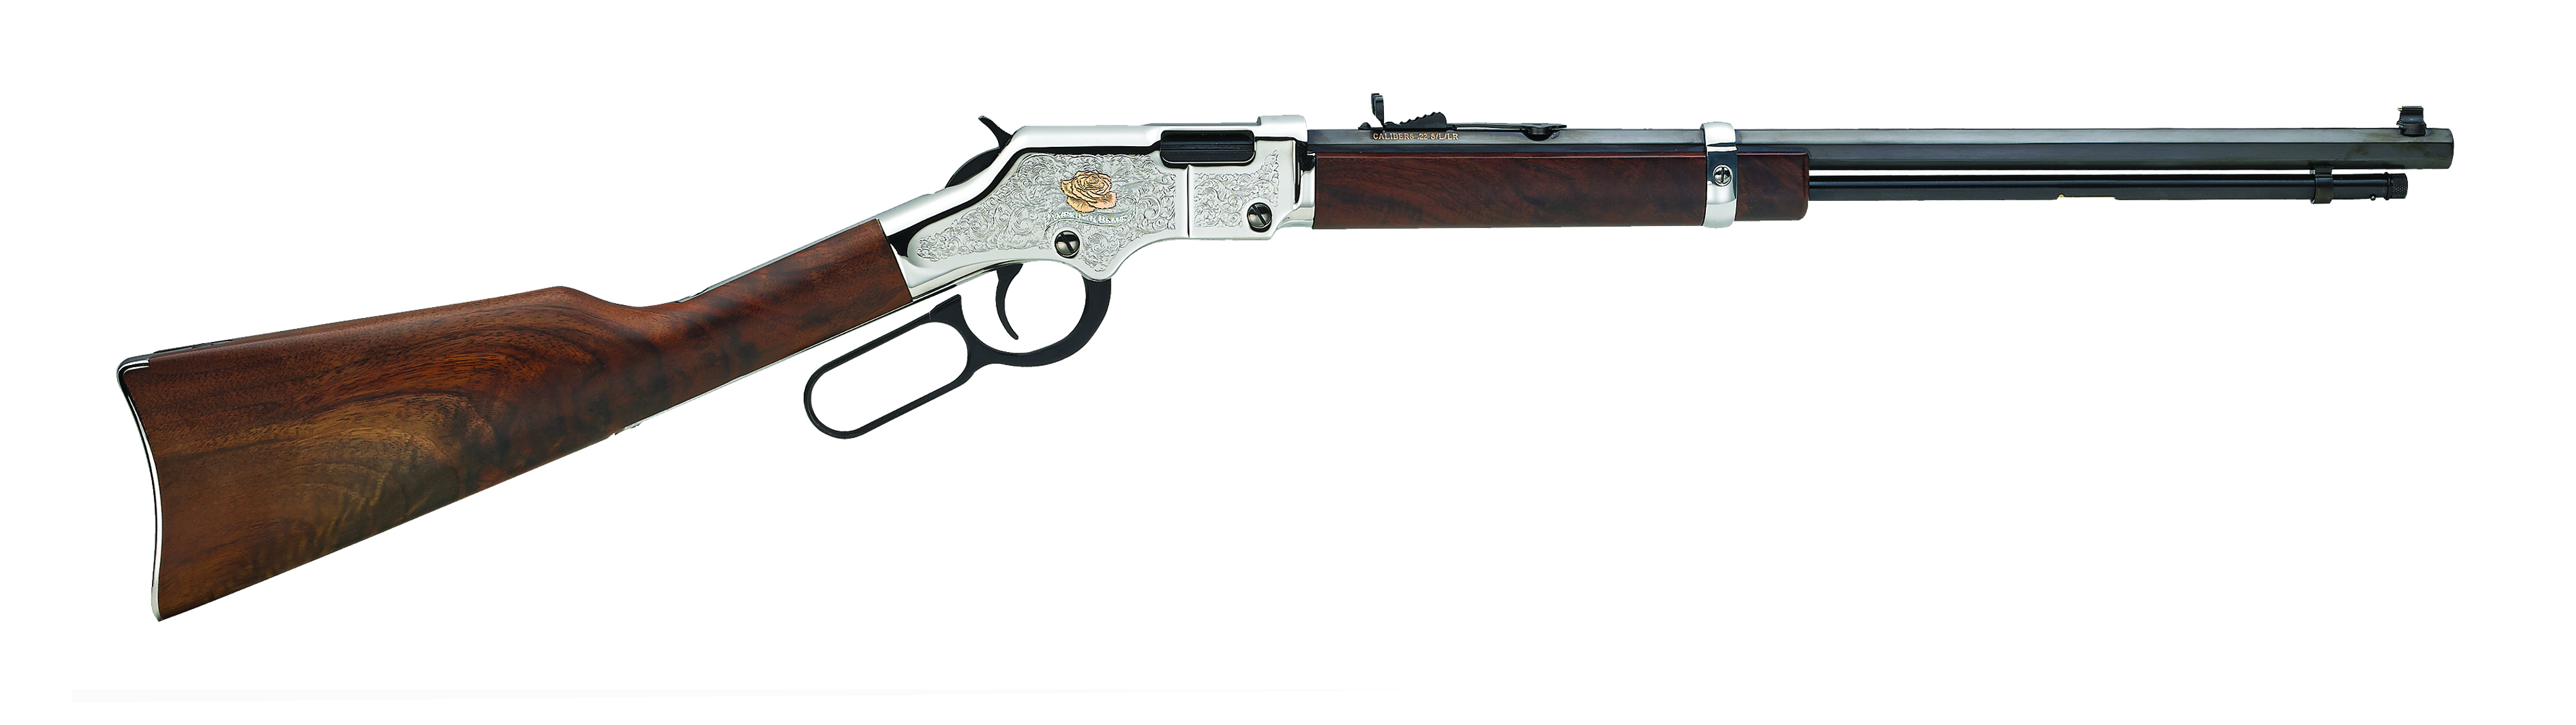 Henry Repeating Arms American Beauty 22 LR